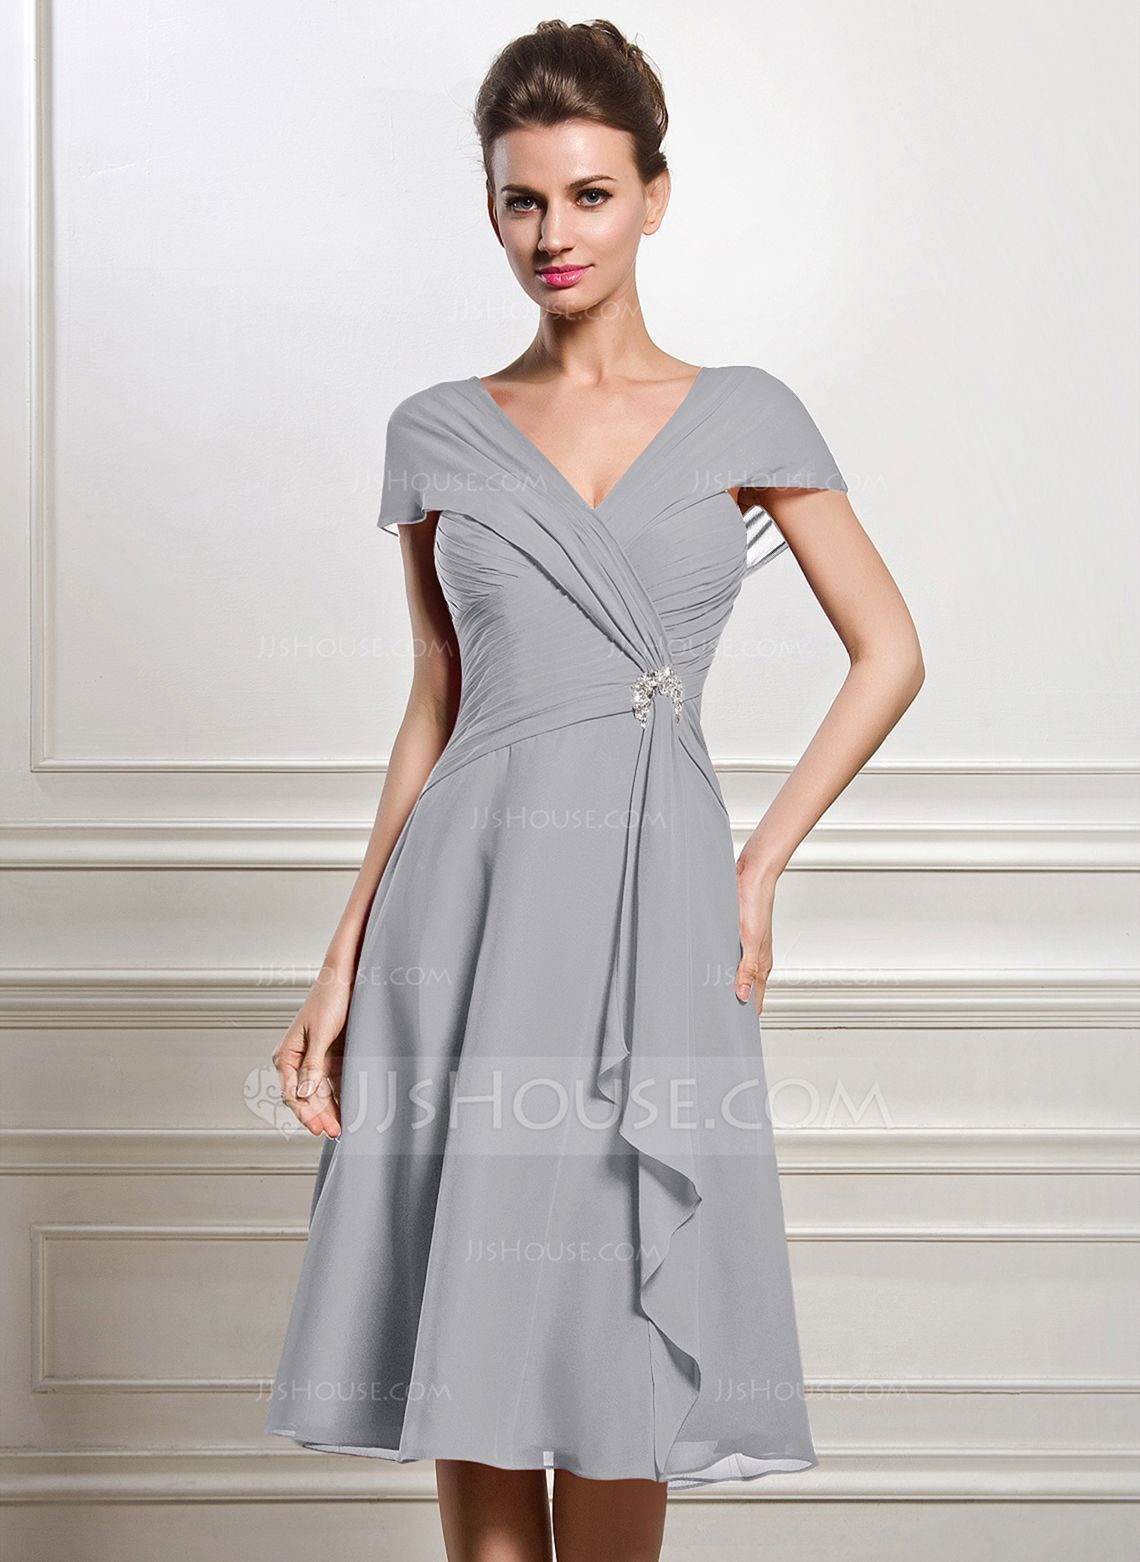 Mother of the Groom Dresses 6 #groomdress